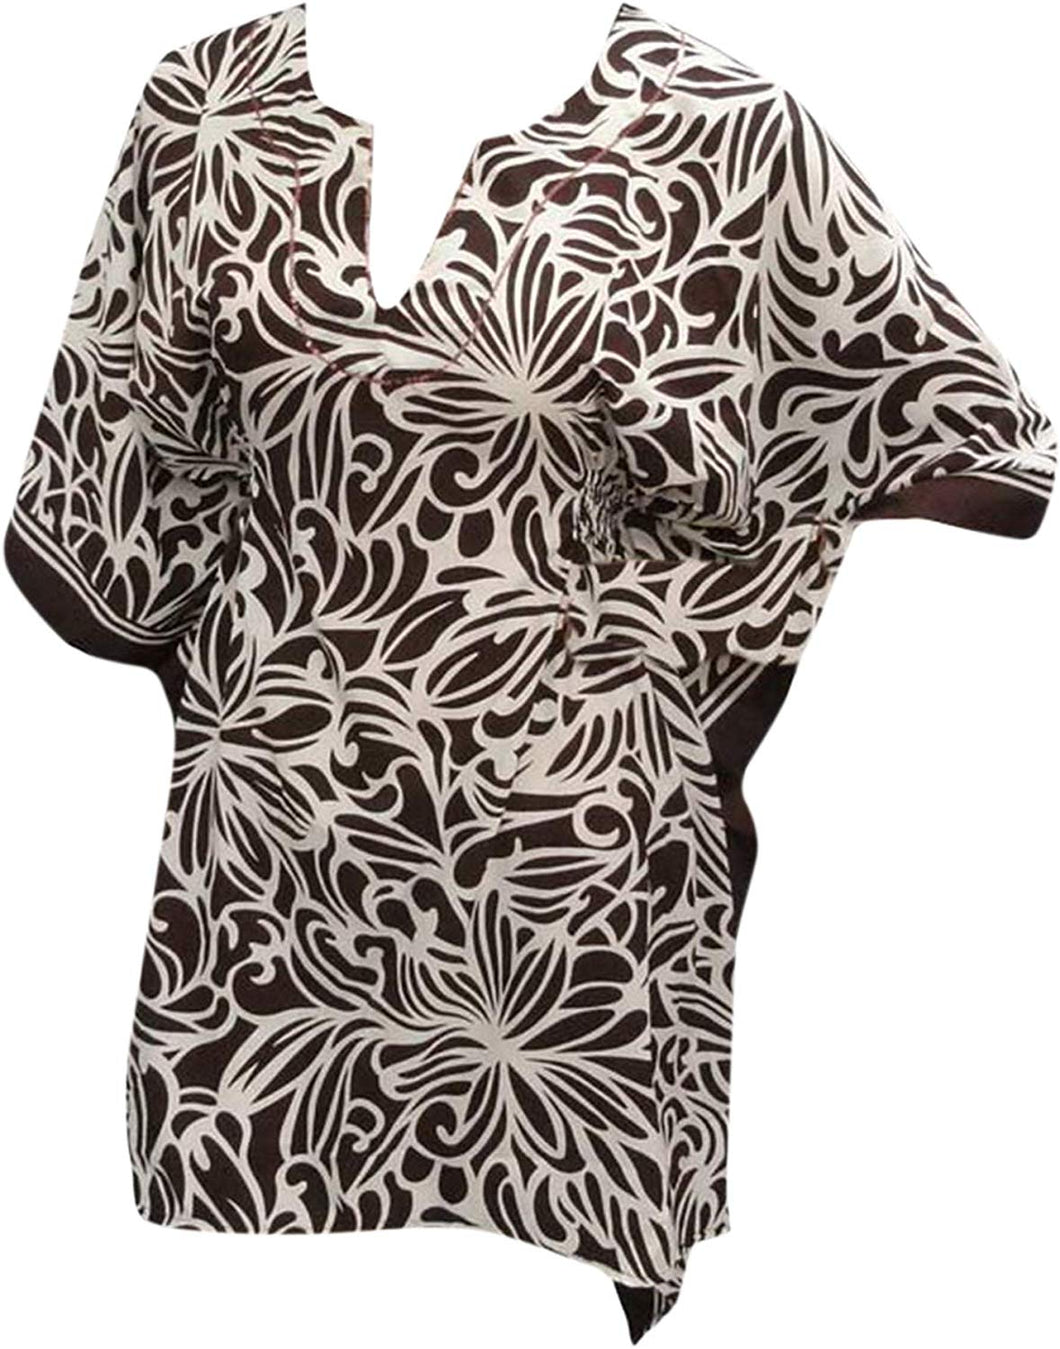 la-leela-soft-fabric-printed-cruise-cardigan-cover-up-osfm-8-14-m-l-brown_2241